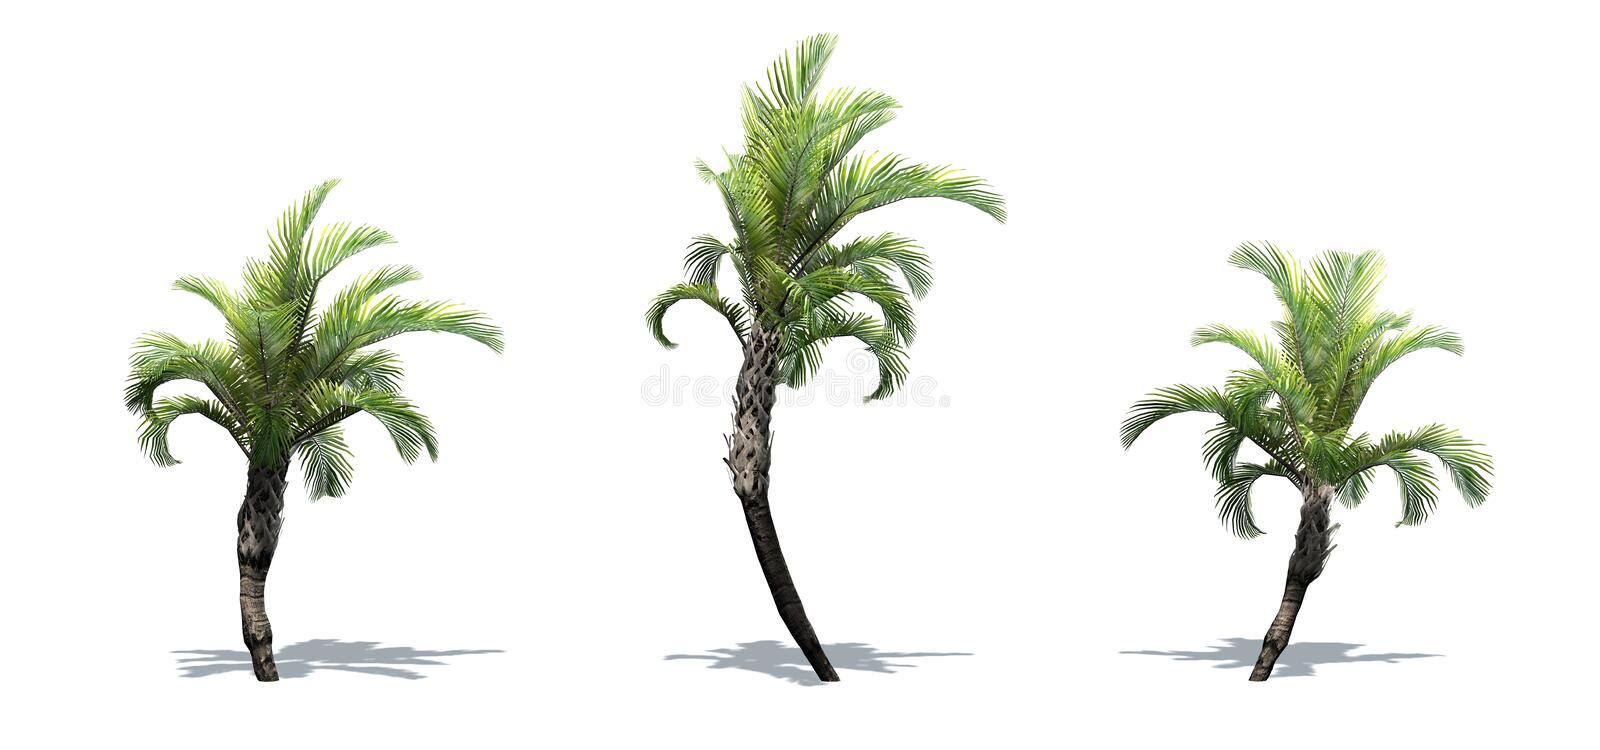 Set of Curly Palm trees with shadow on the floor. Isolated on white background royalty free illustration